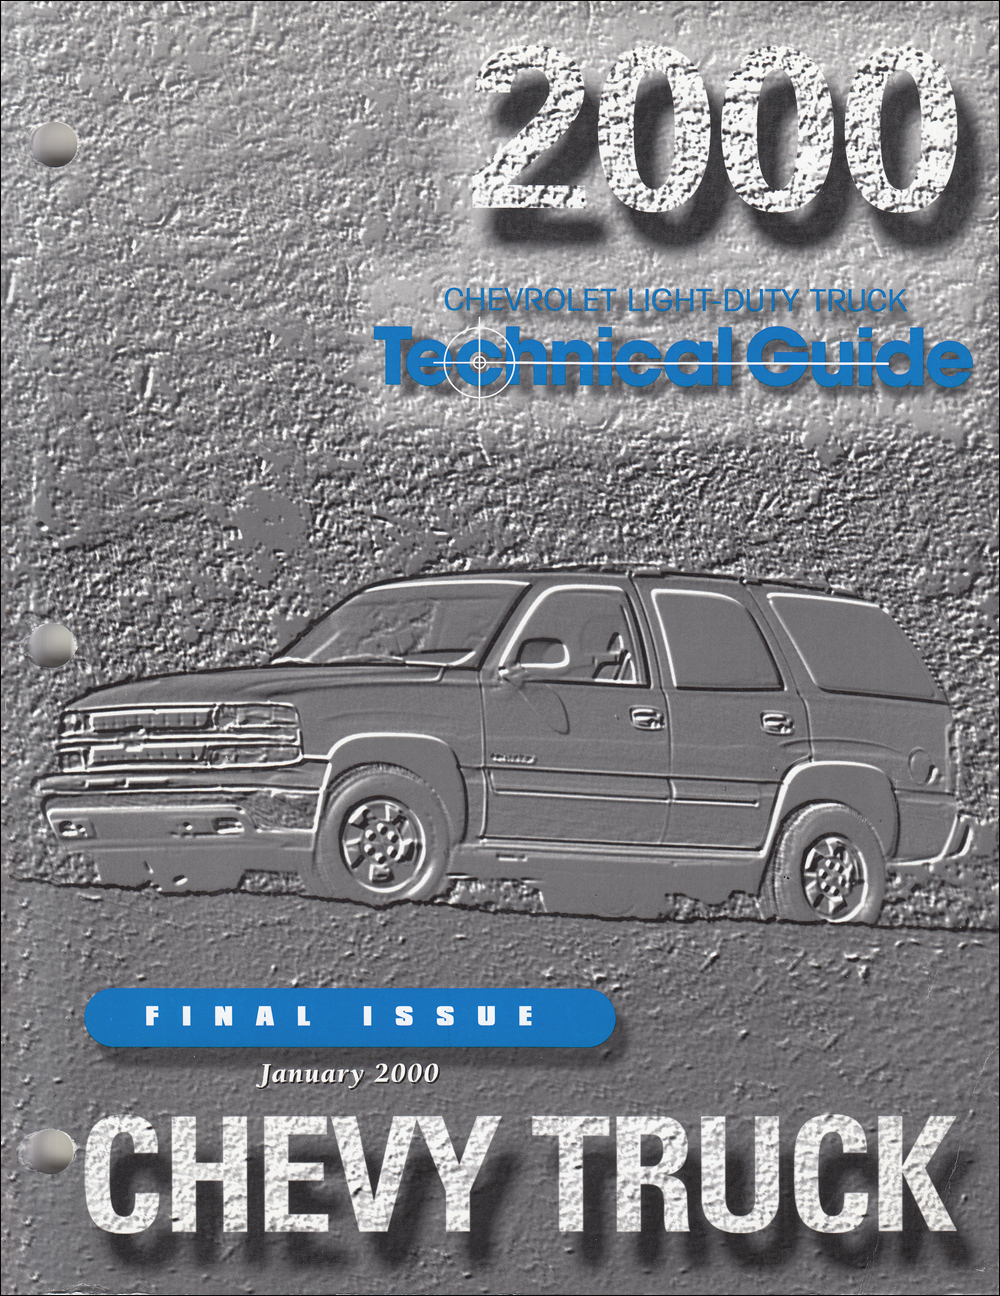 2000 Chevrolet Truck Technical Guide Dealer Album Original Final Issue